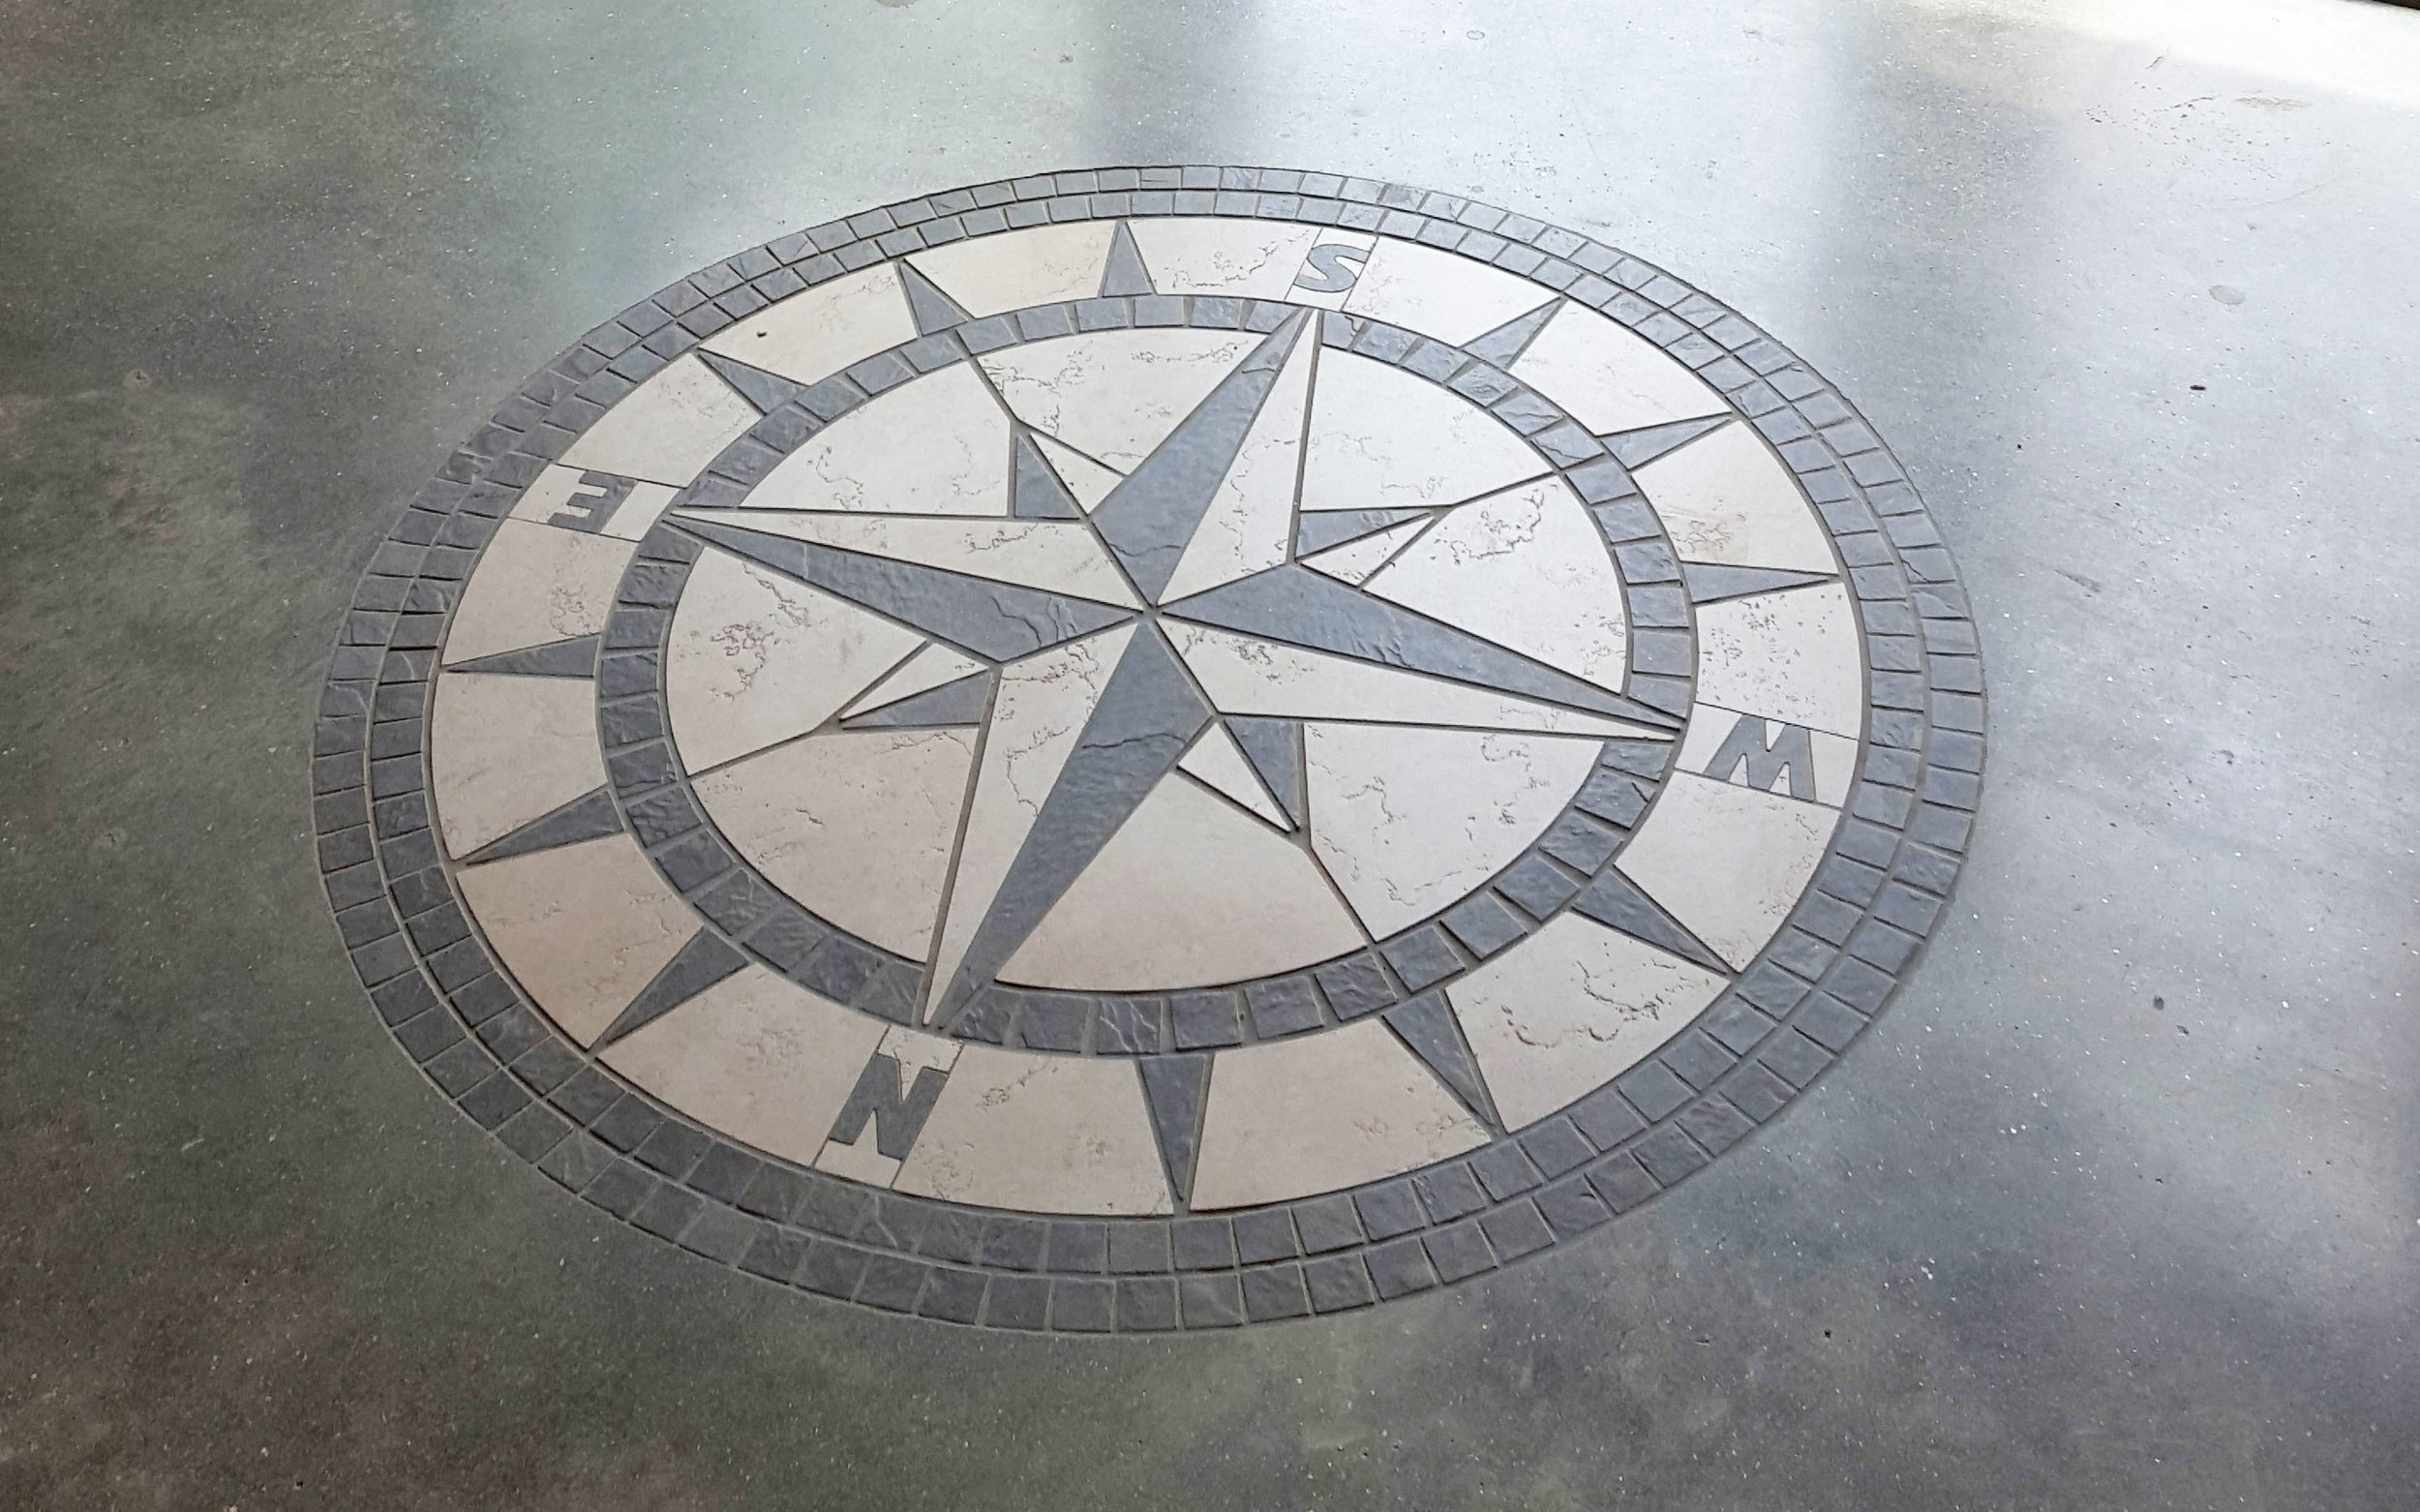 off-the-grid-litchfield-compass-rose-concrete-floor_CROP.jpg